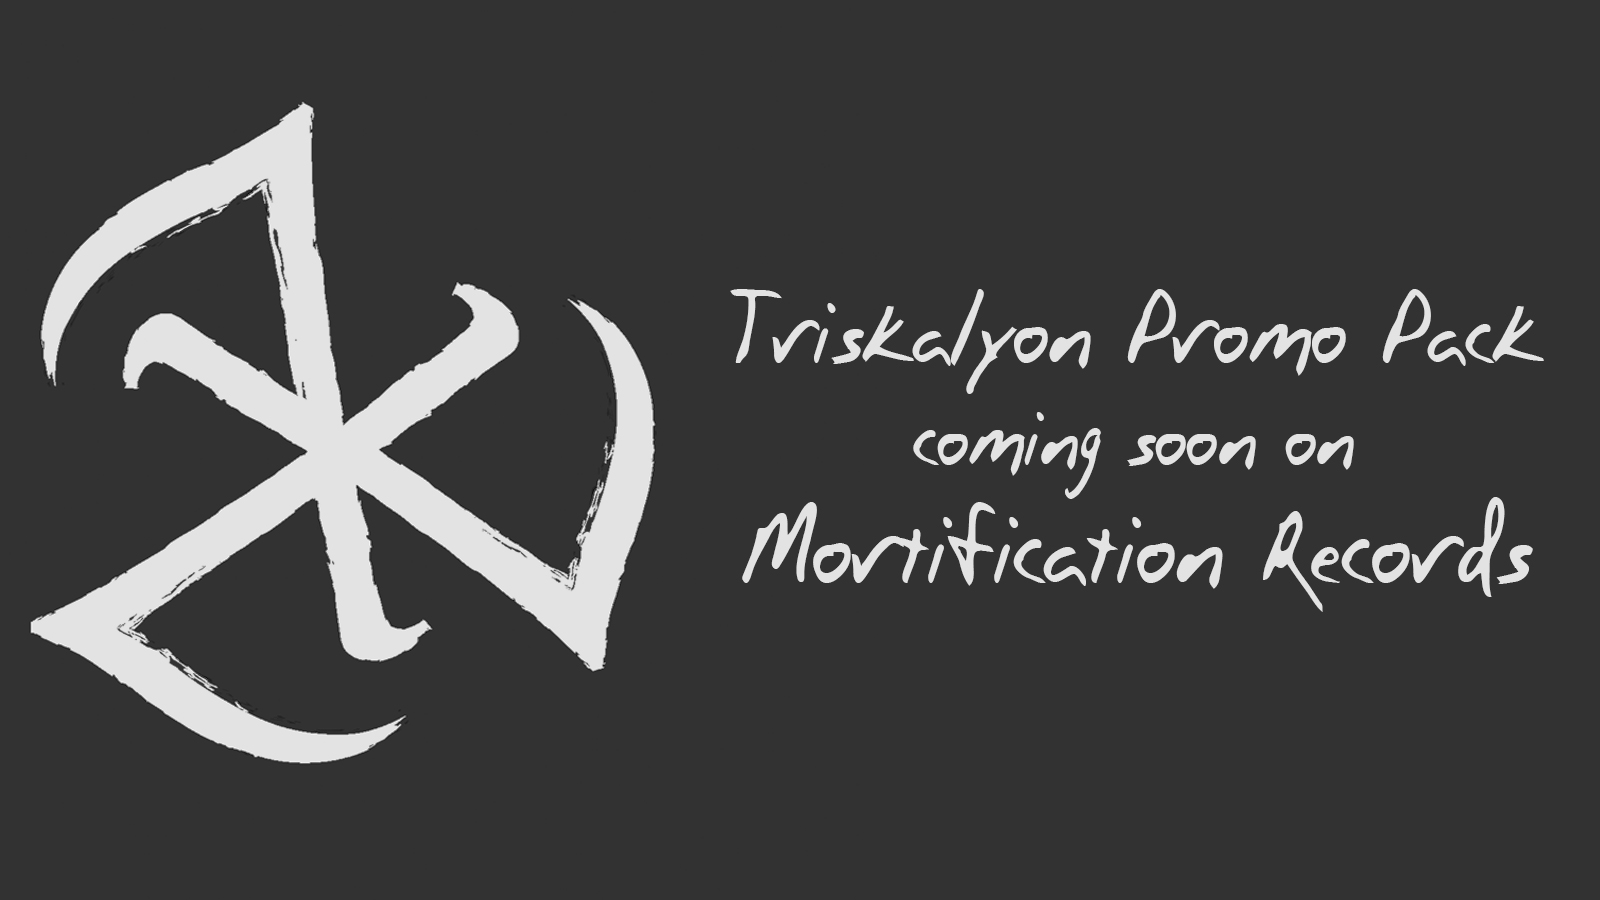 Vision Éternel To Appear On Triskalyon Promo Pack Compilation